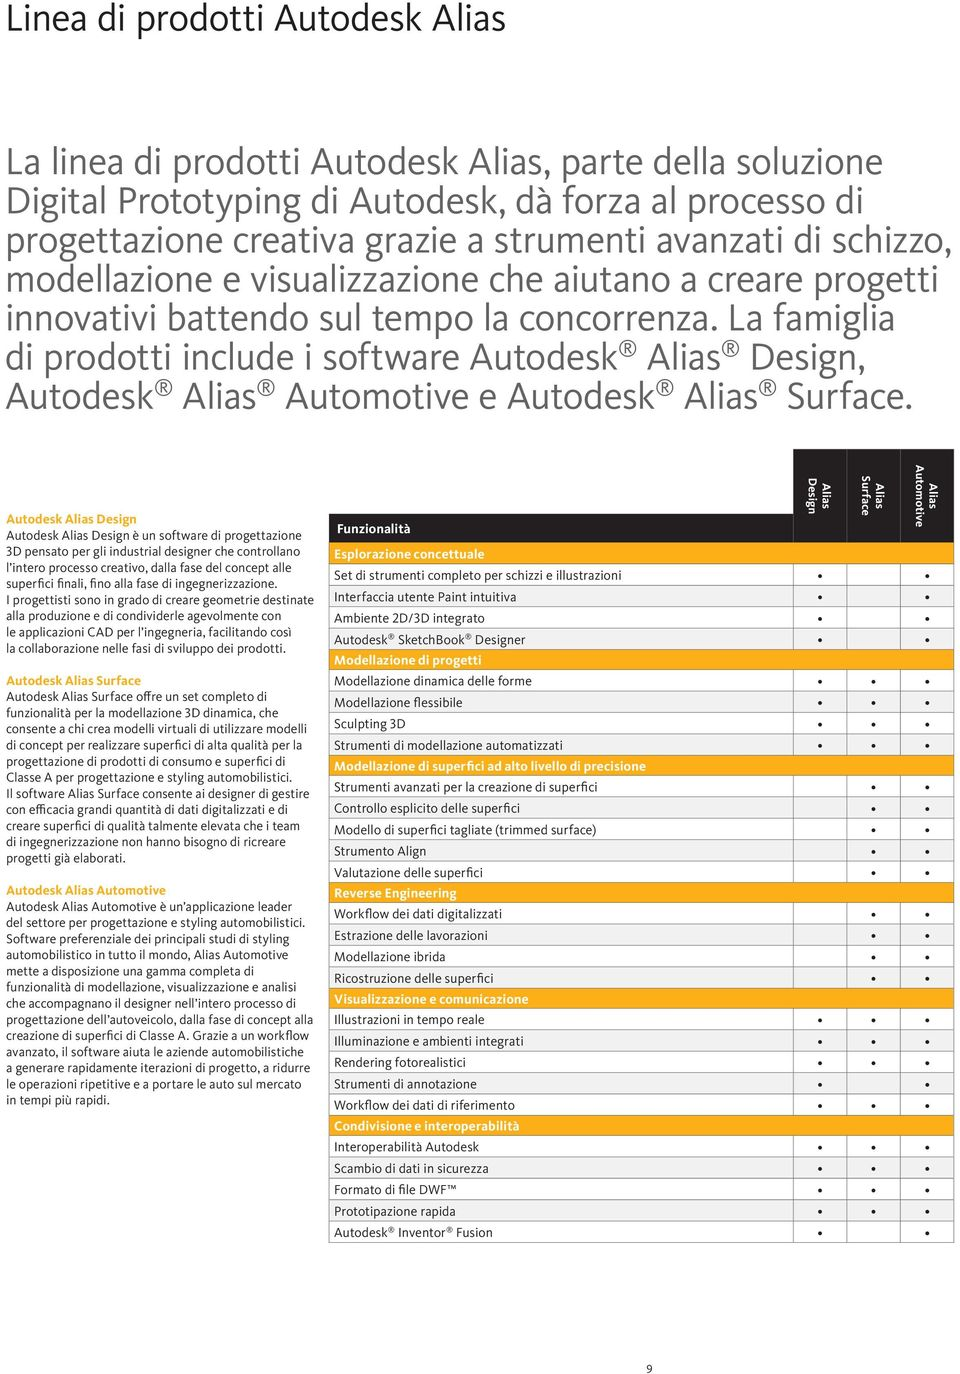 La famiglia di prodotti include i software Autodesk Alias Design, Autodesk Alias Automotive e Autodesk Alias Surface.